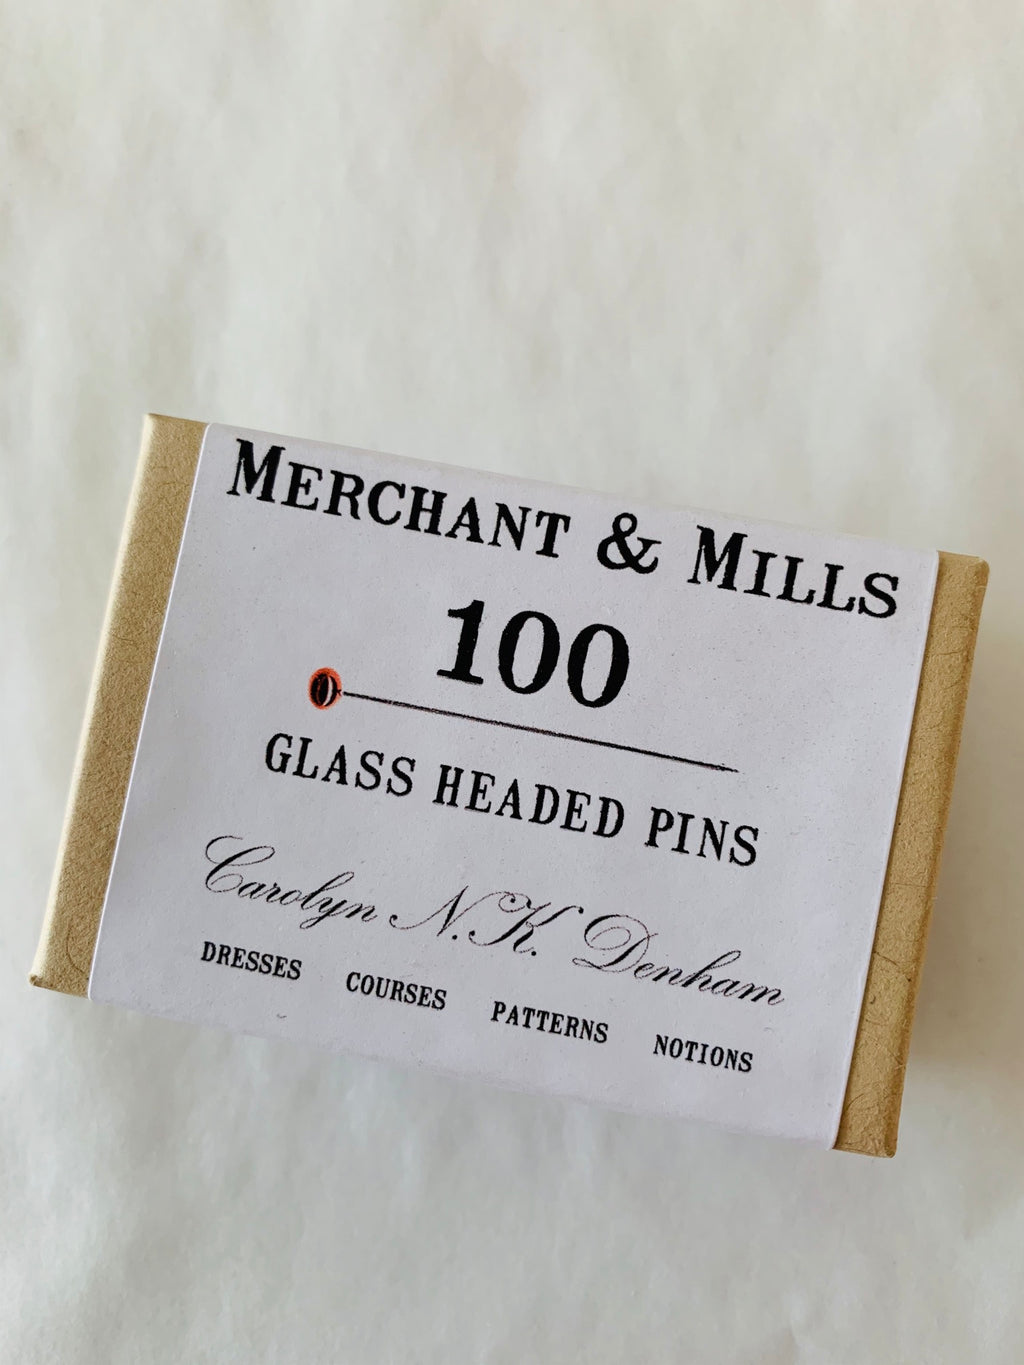 Merchant and Mills 100 Glass Headed Pins